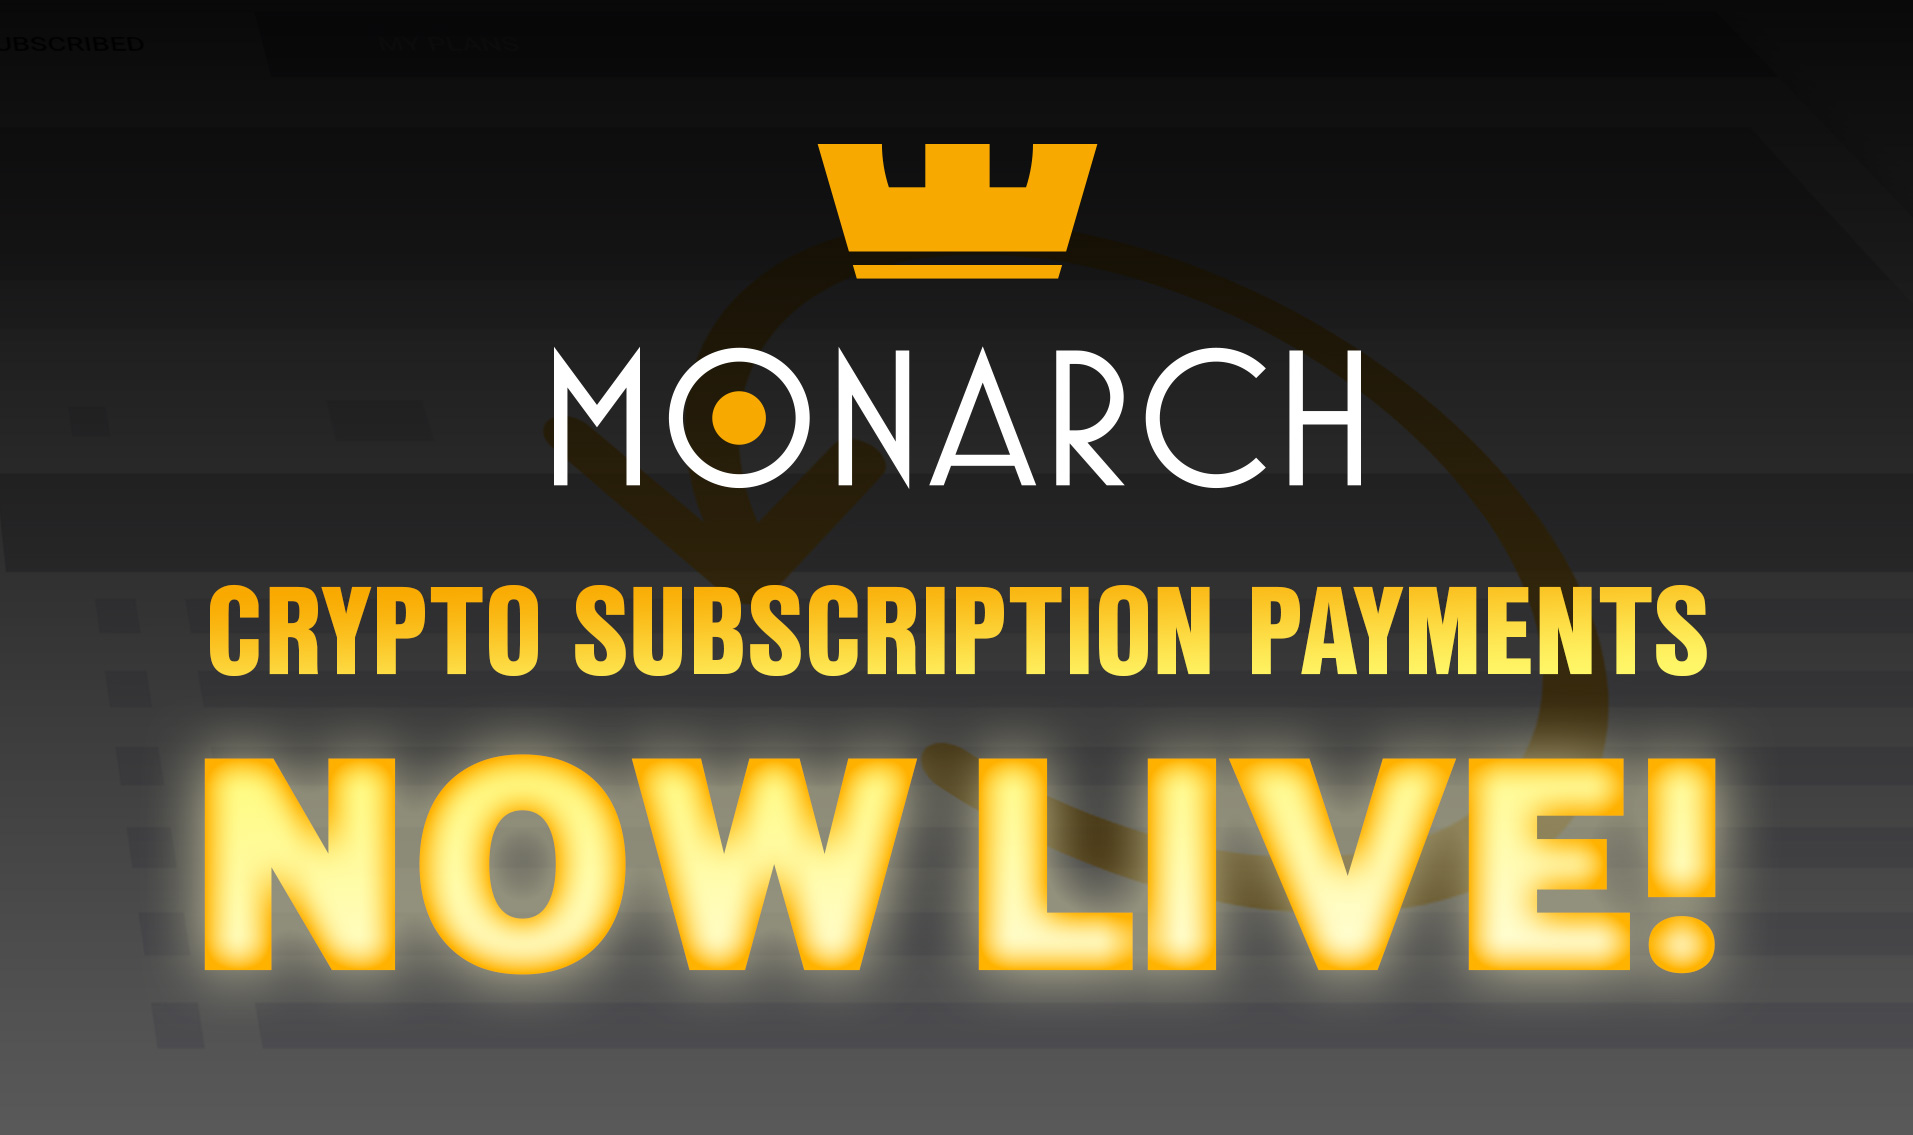 World's First Decentralized Recurring Crypto Payments System Launched by Monarch Blockchain